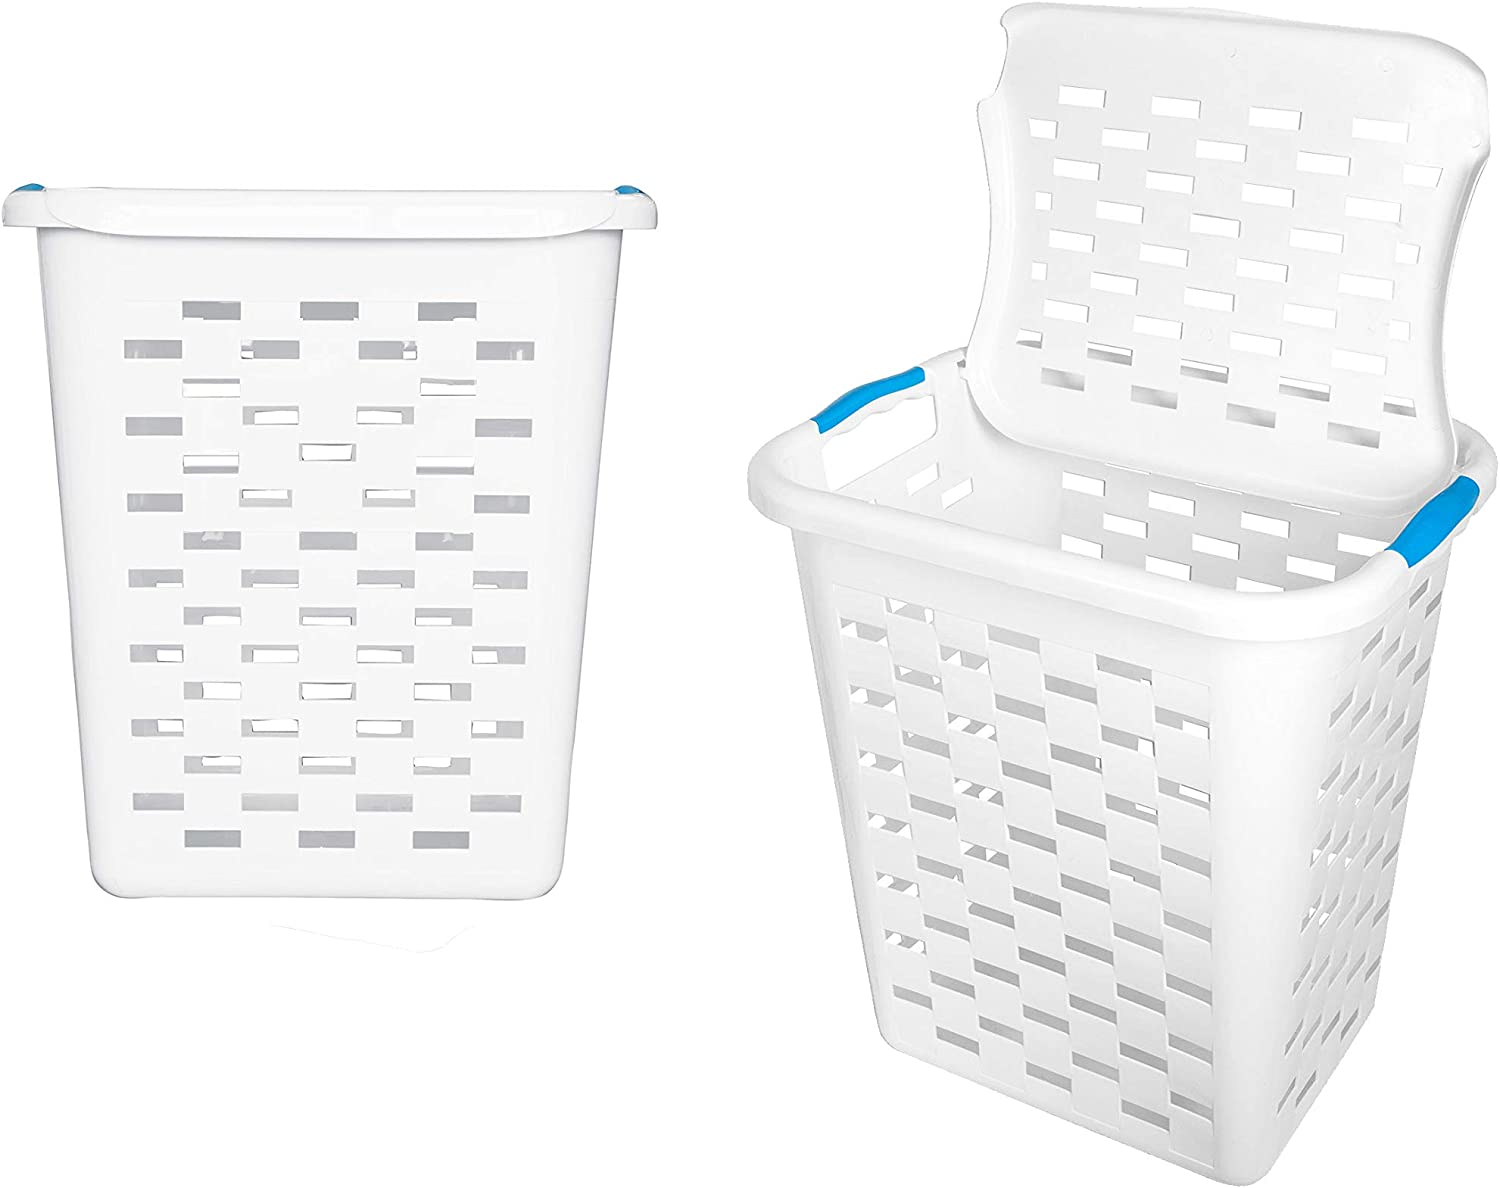 Clorox Max 64% OFF Max 52% OFF Plastic Laundry Baskets with Protection Antimicrobial 2